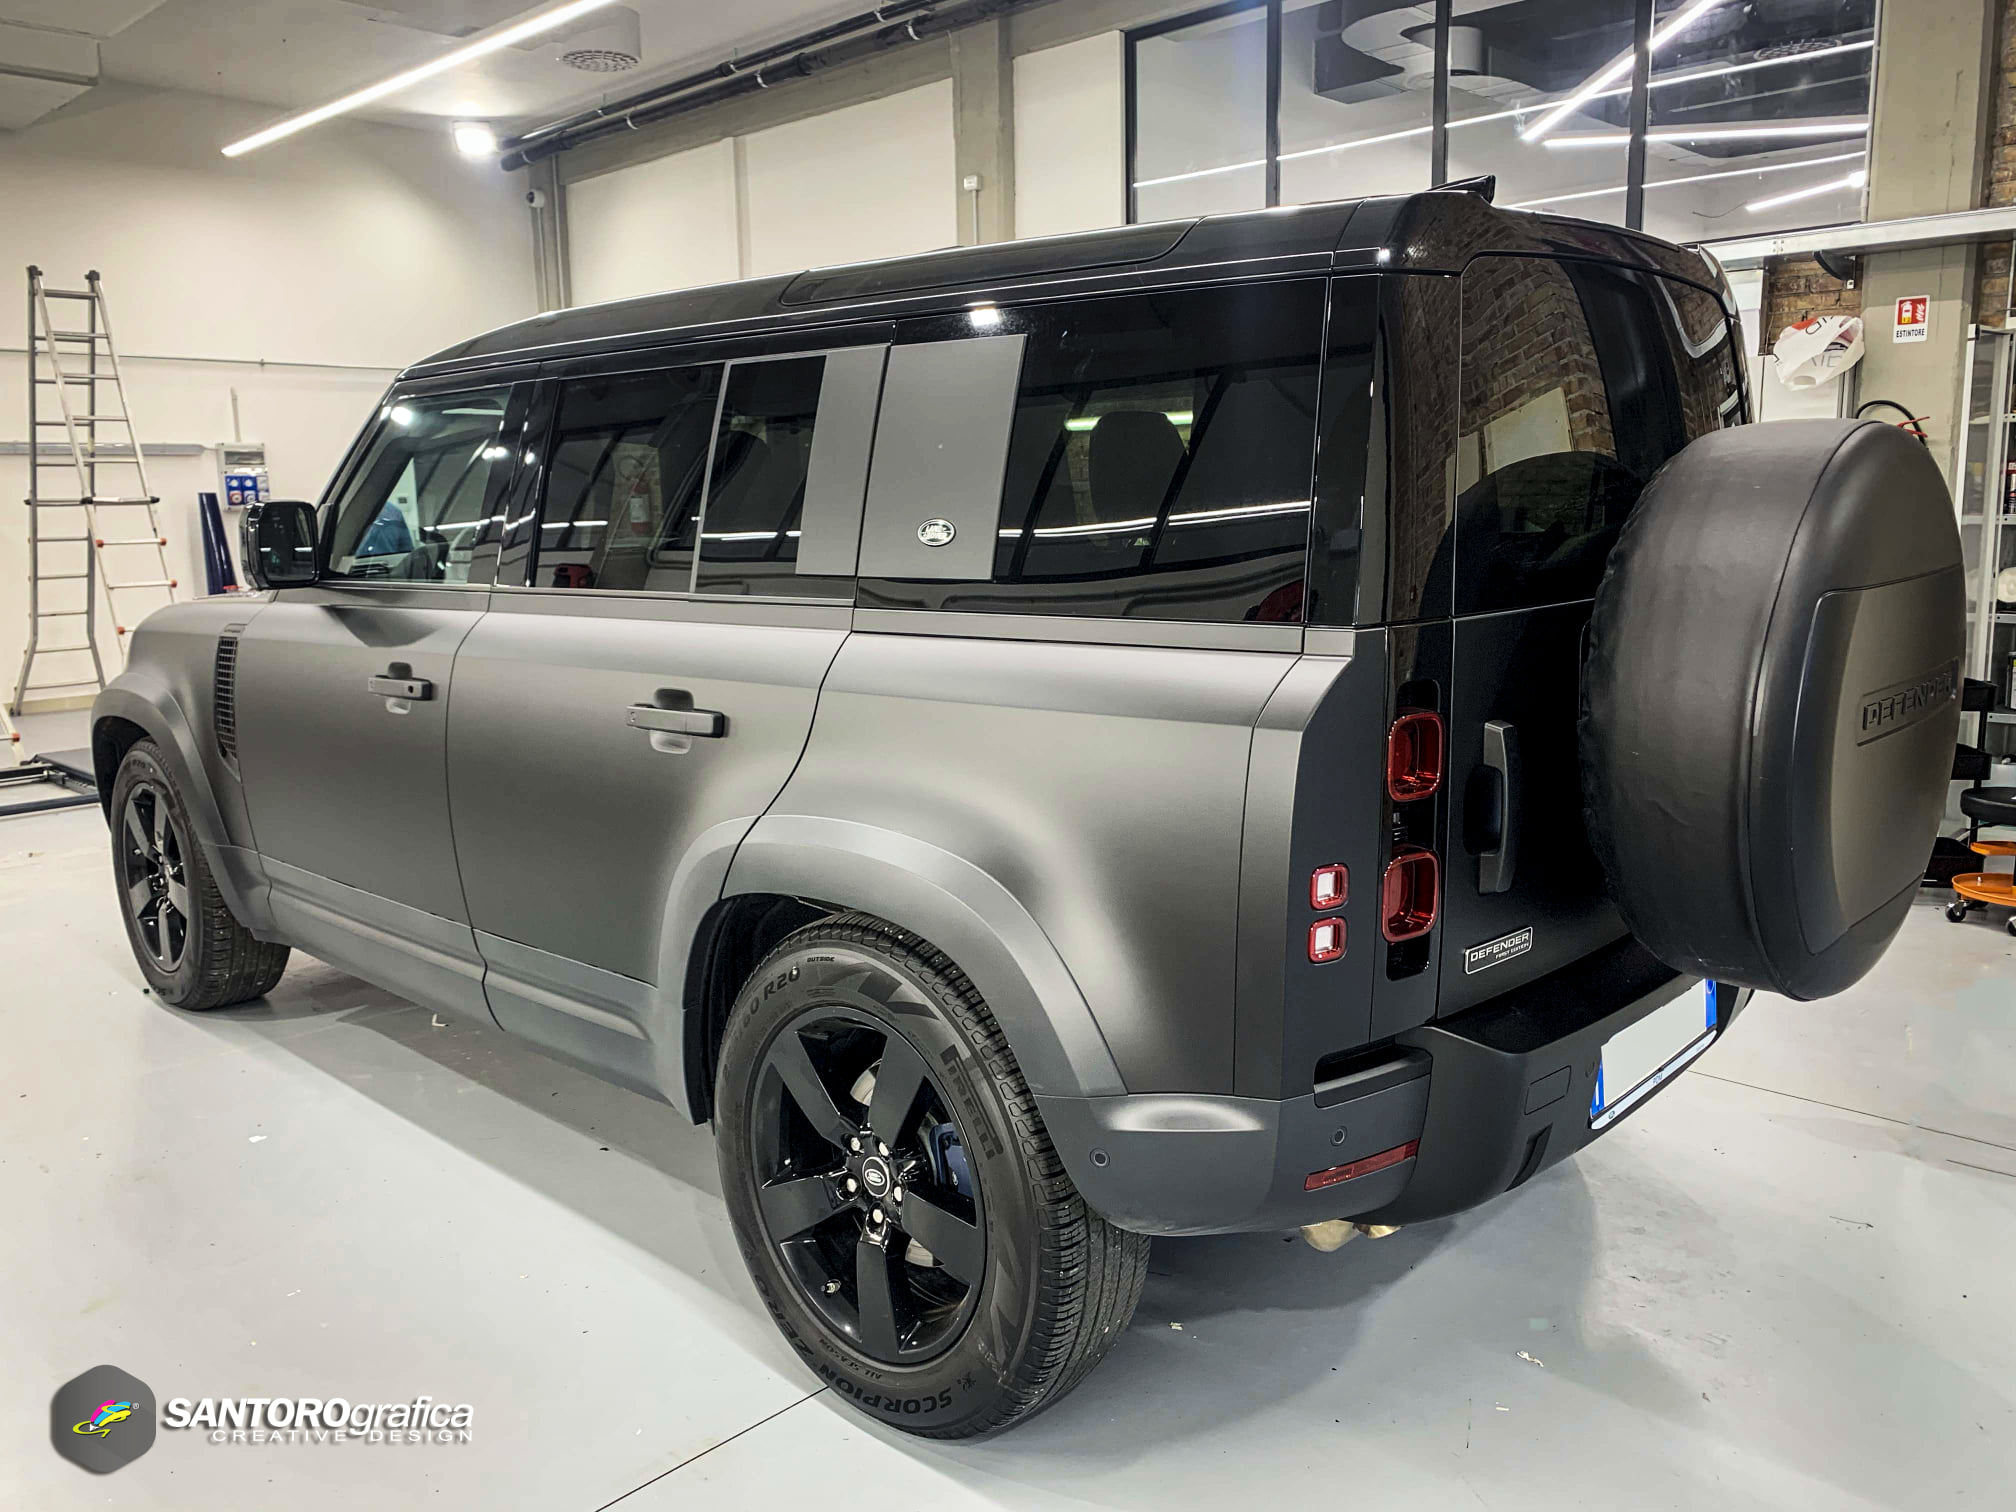 car wrapping land rover defender nero opaco 4